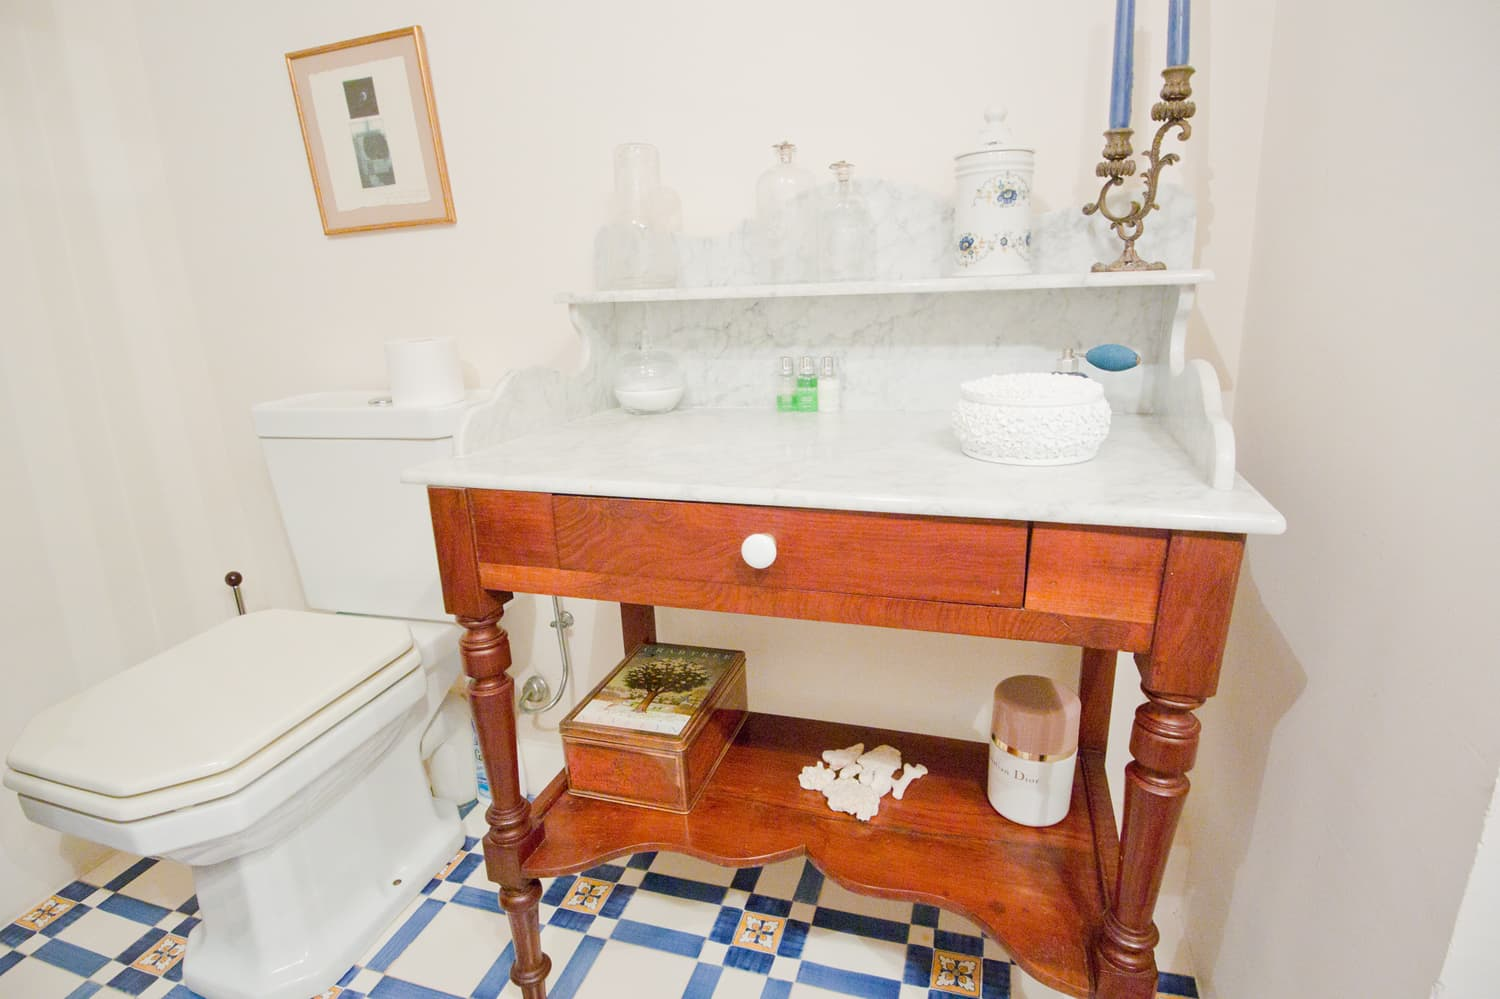 Bathroom in Provence rental accommodation